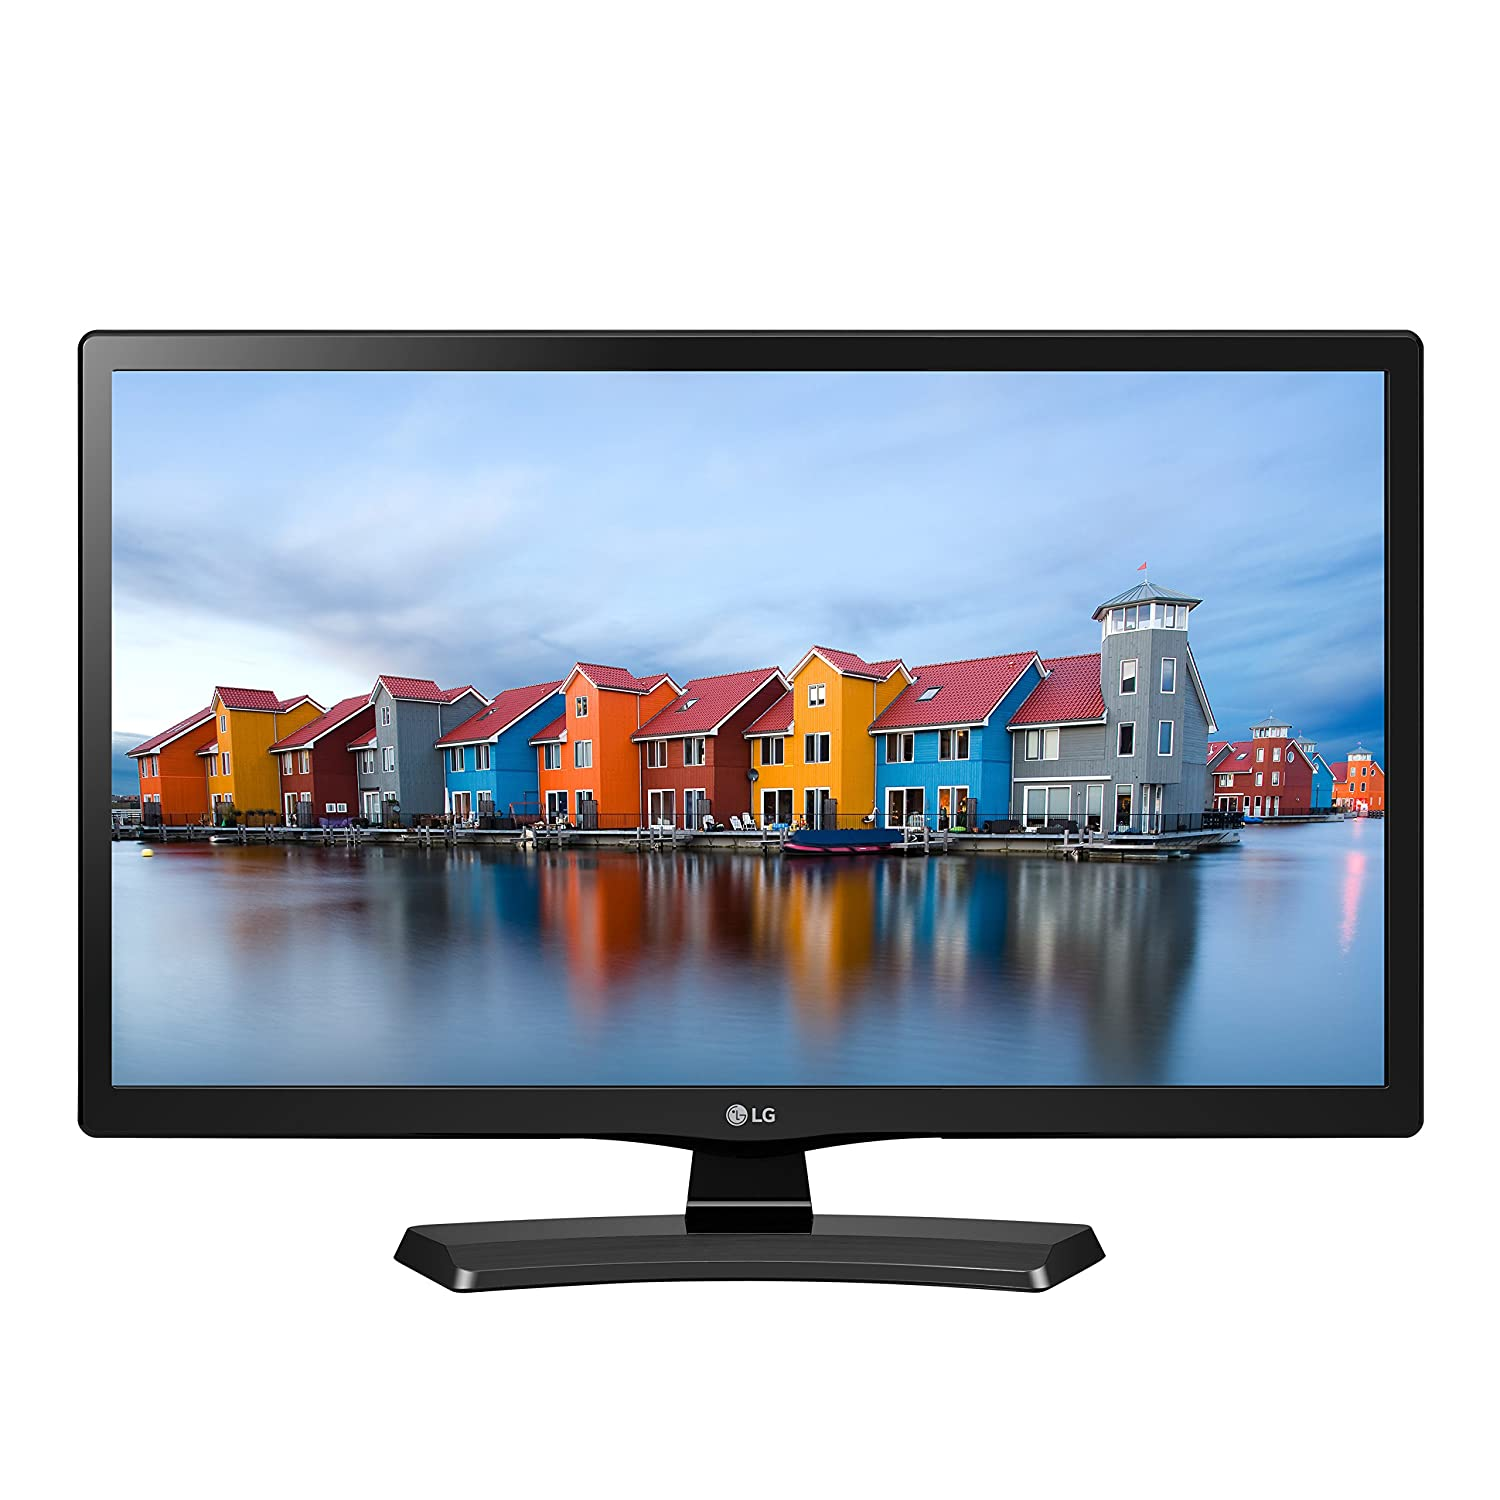 LG Electronics 24LH4530 24-Inch 720p LED TV (2016 Model)